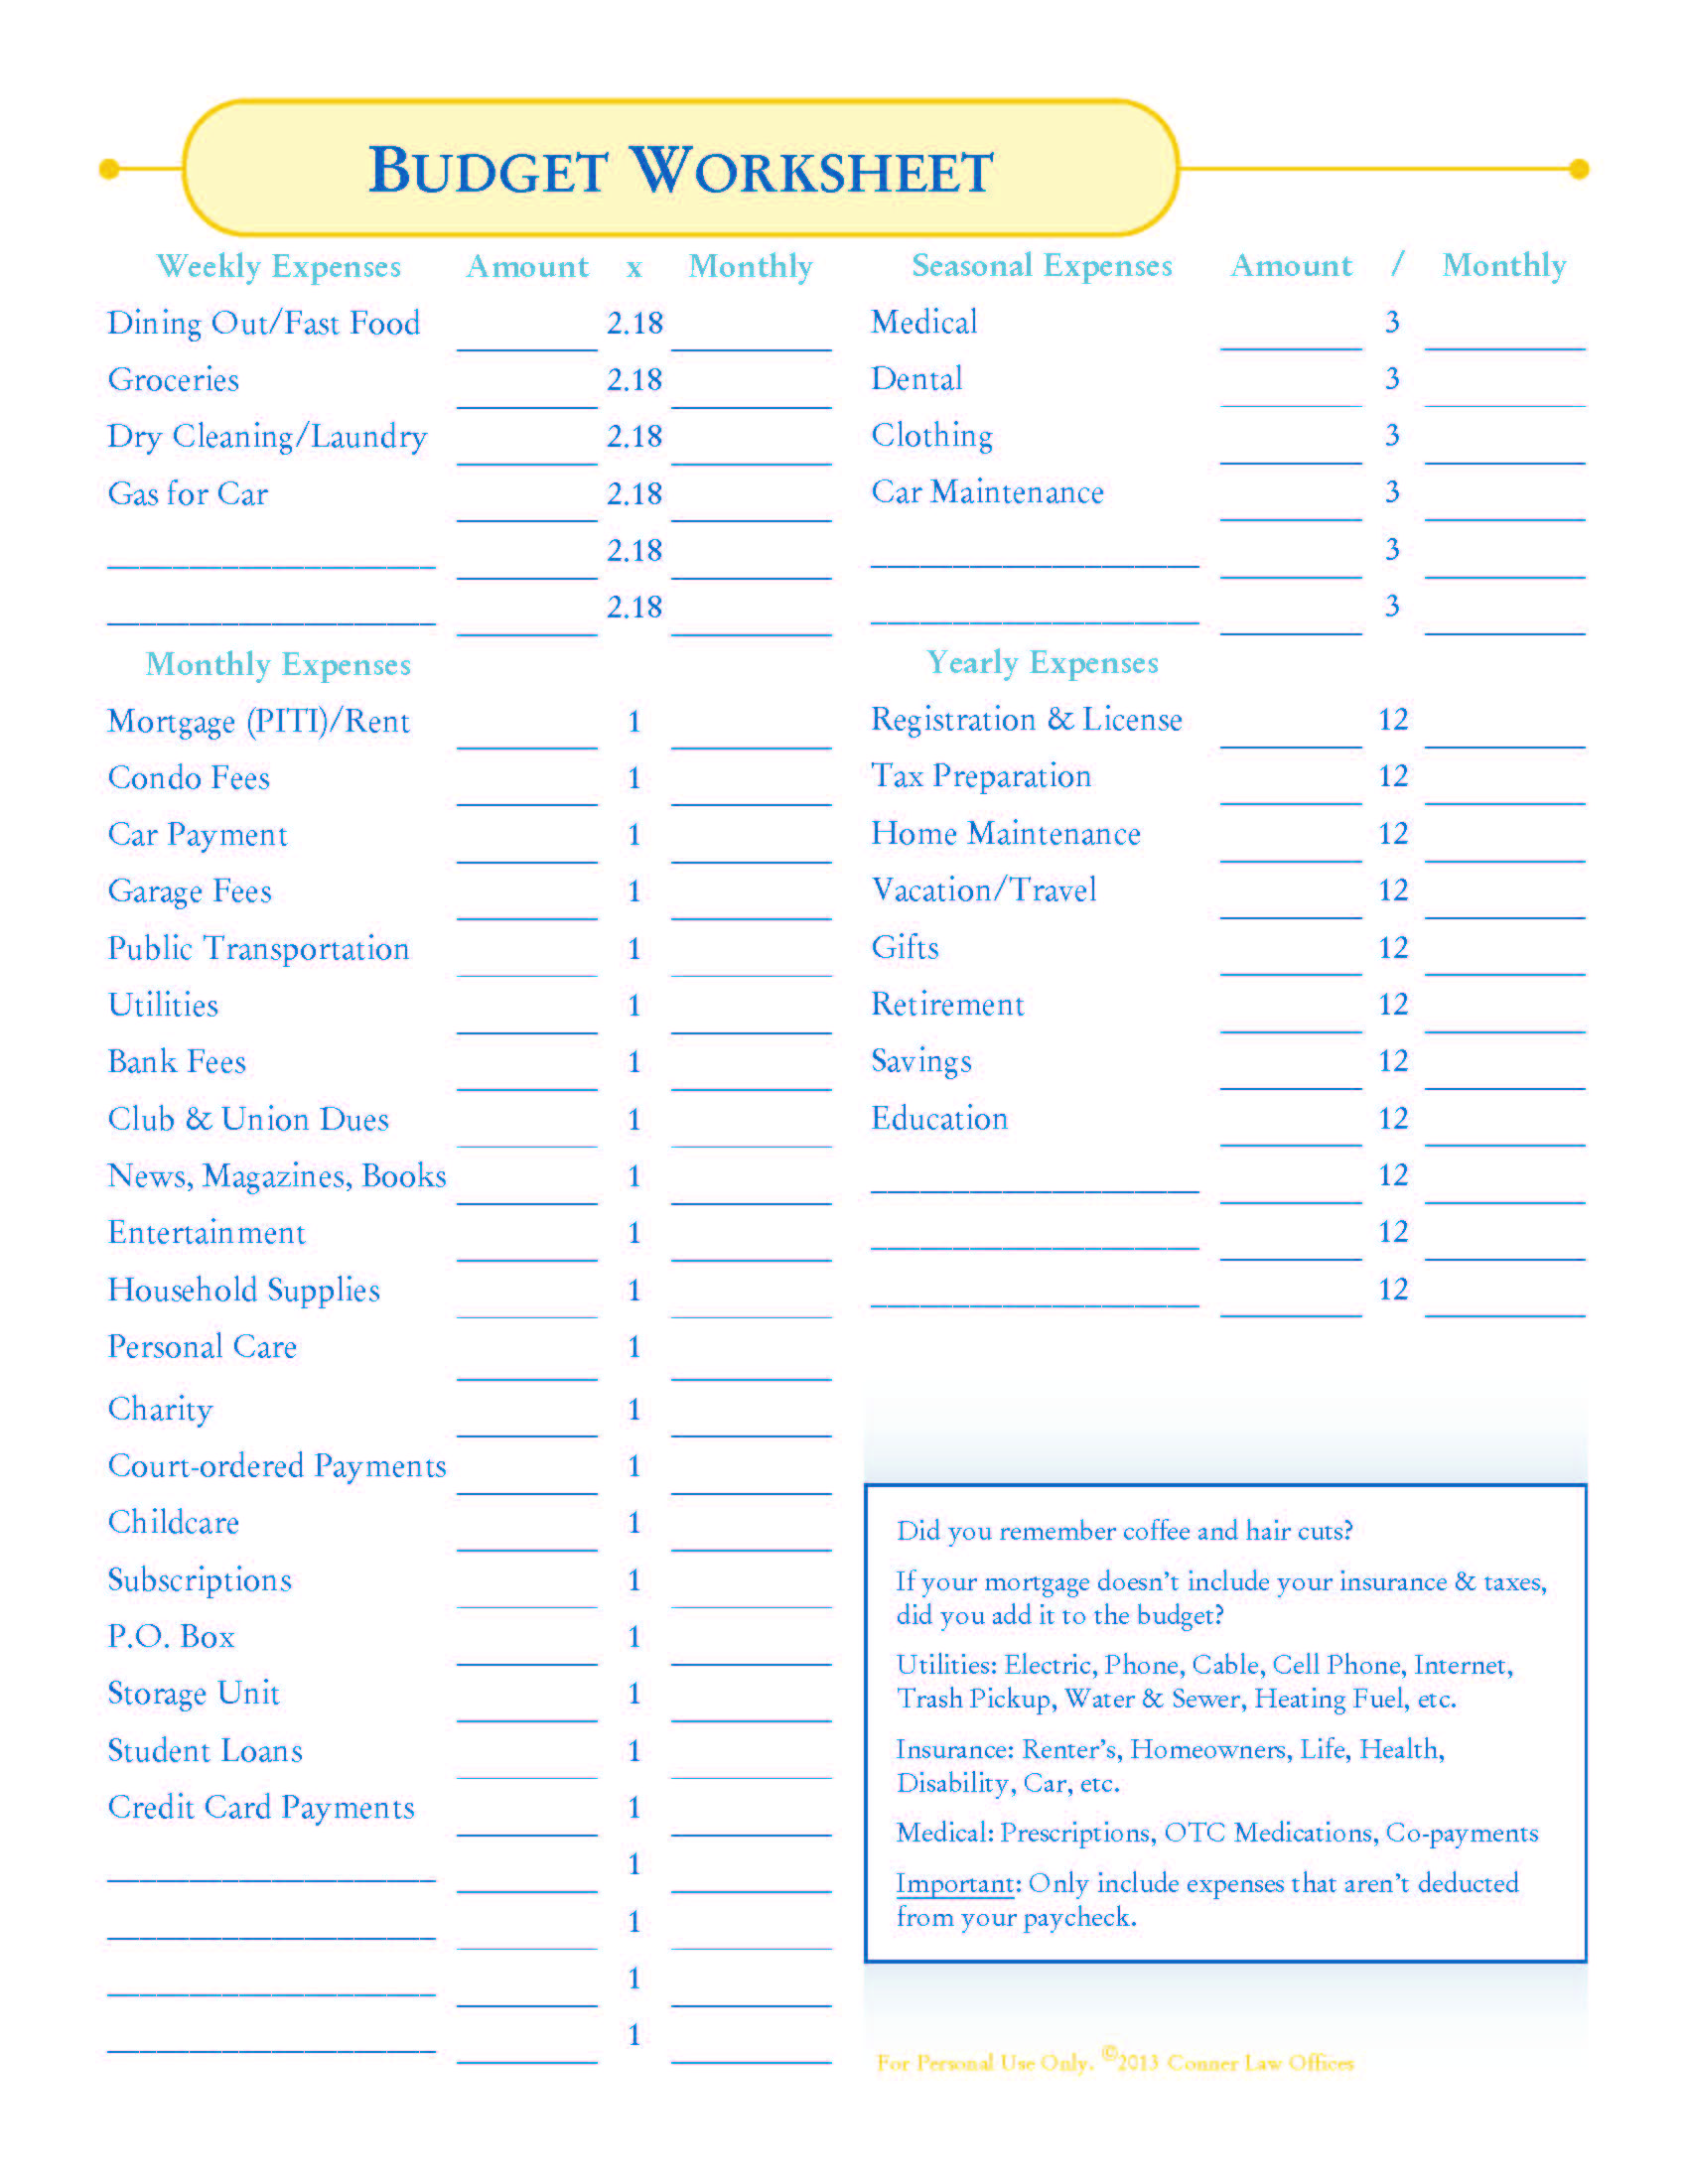 Worksheet Complete Budget Worksheet 1000 images about budget and planning 2017 on pinterest printables organized planner planners